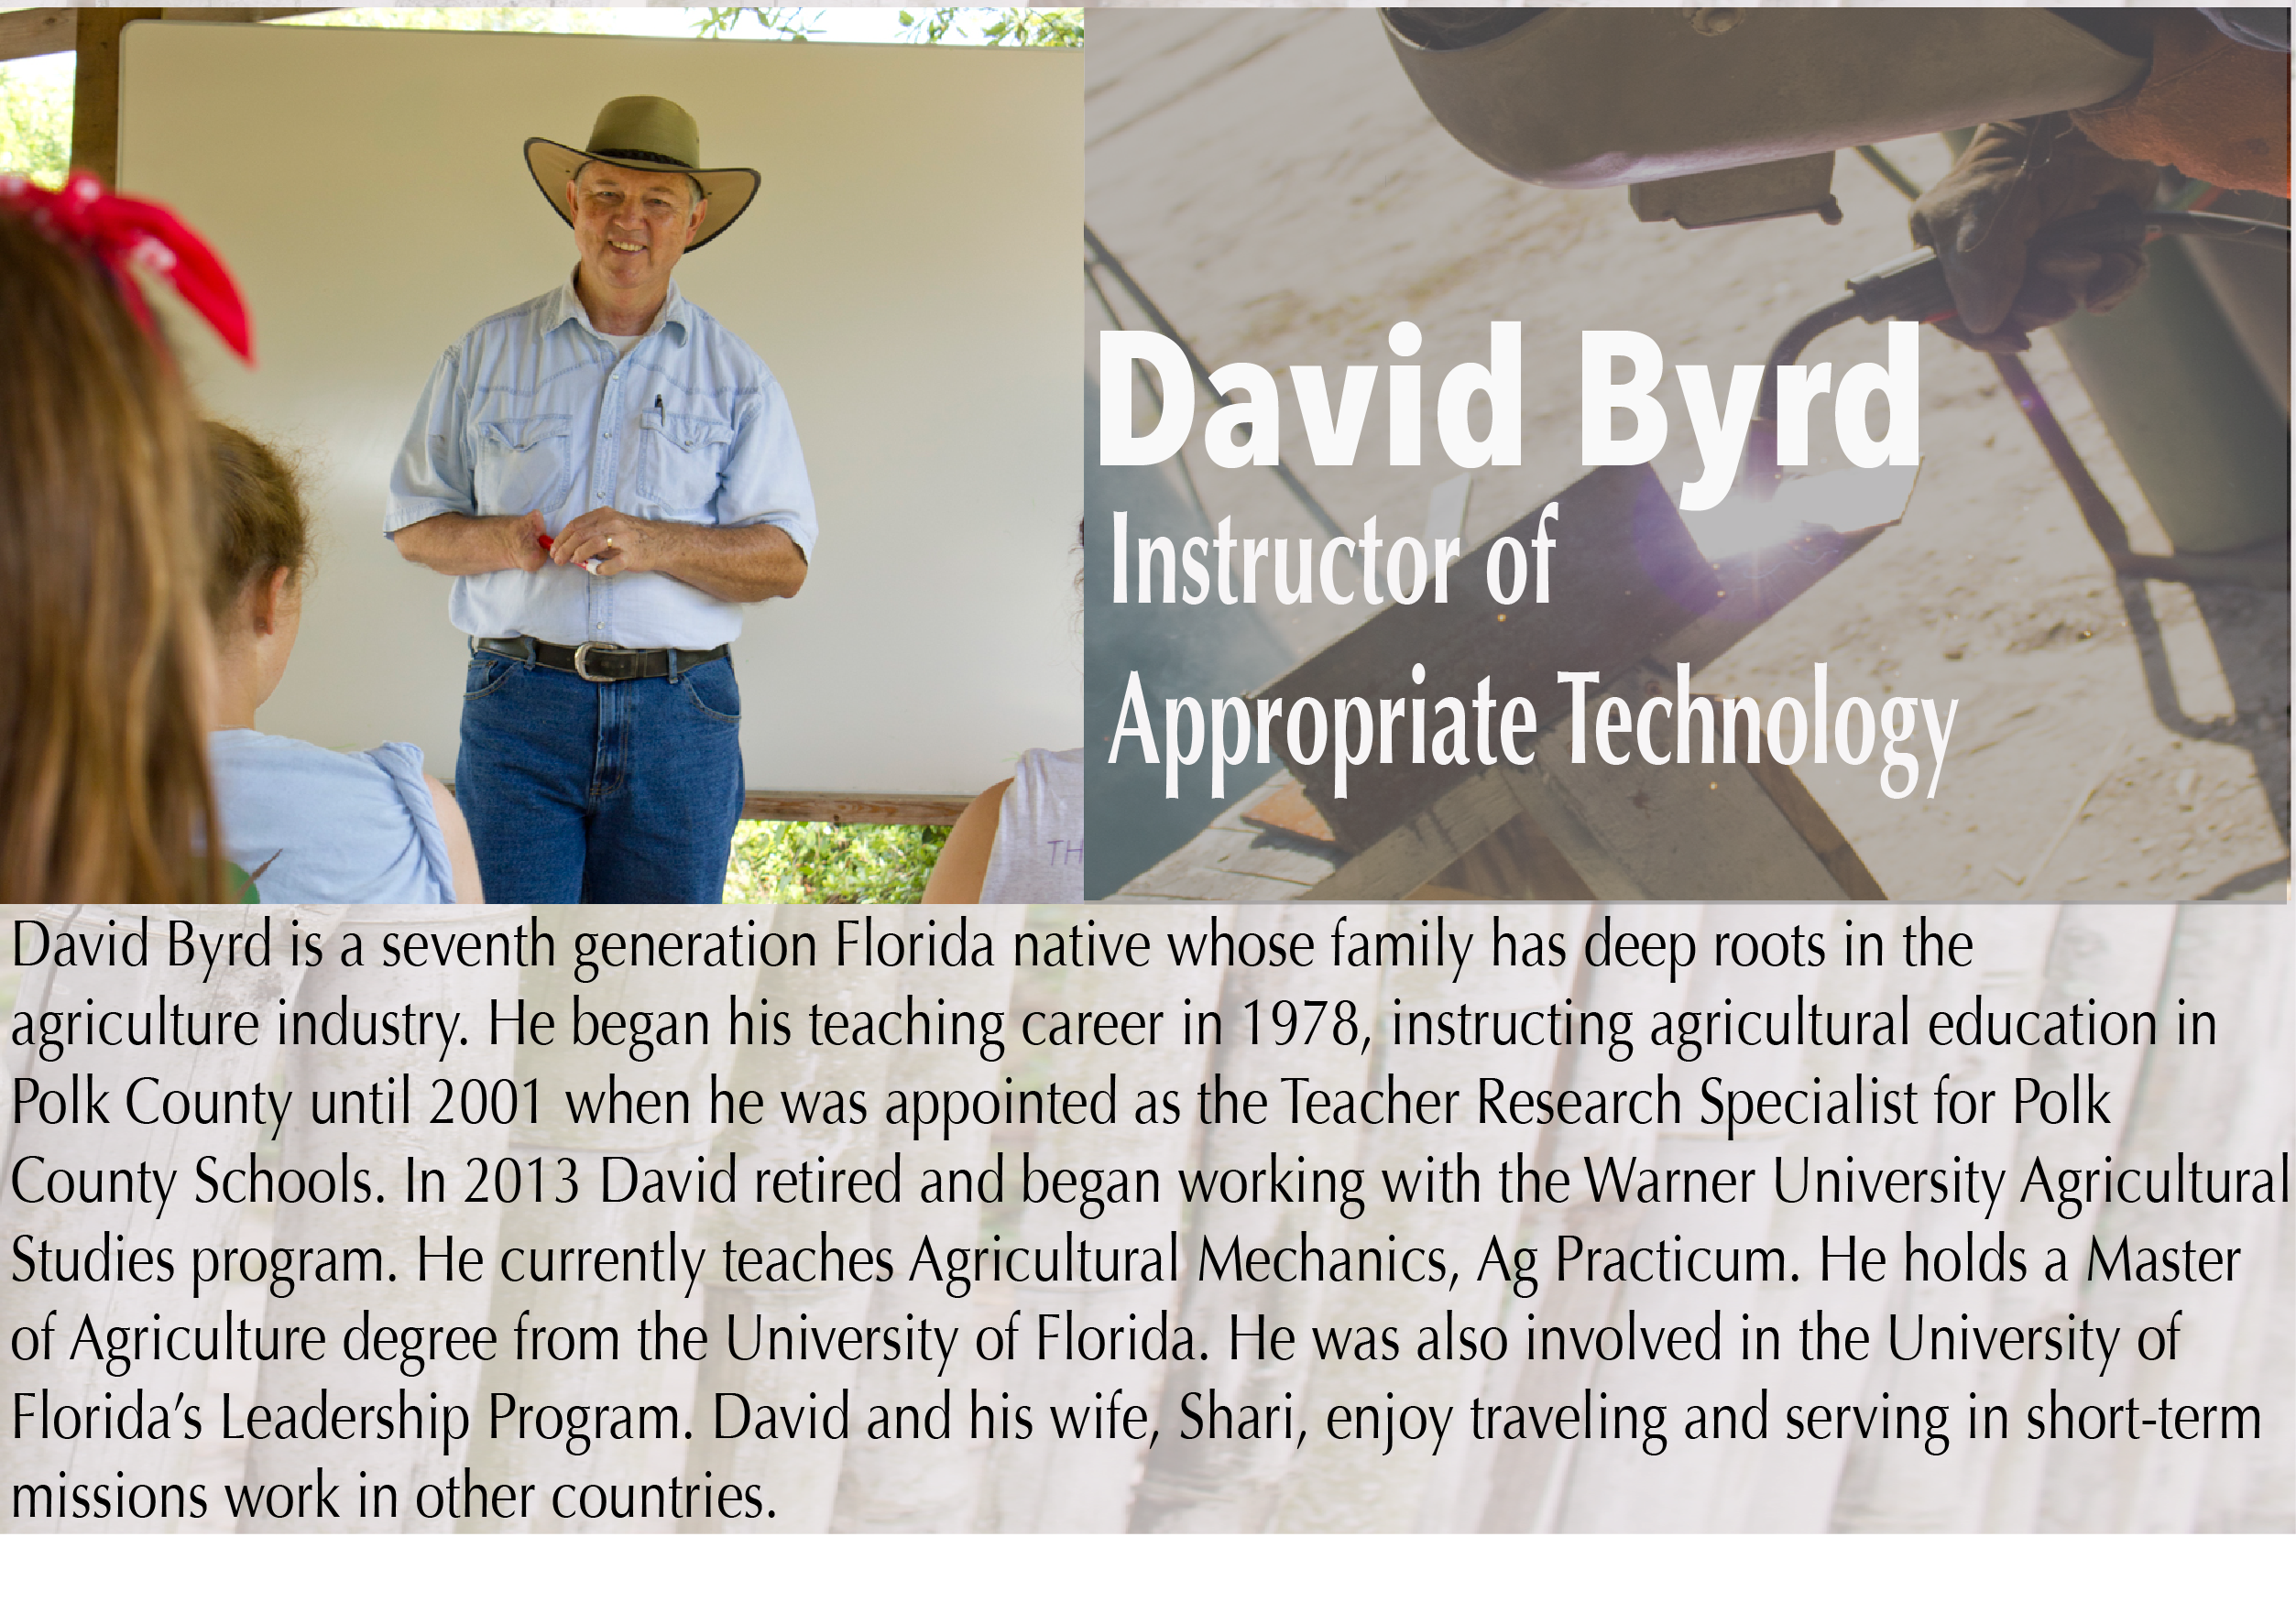 David Byrd - HEART Institute - Central Florida, Lake Wales, Florida - Sustainability Training - Missionary Training